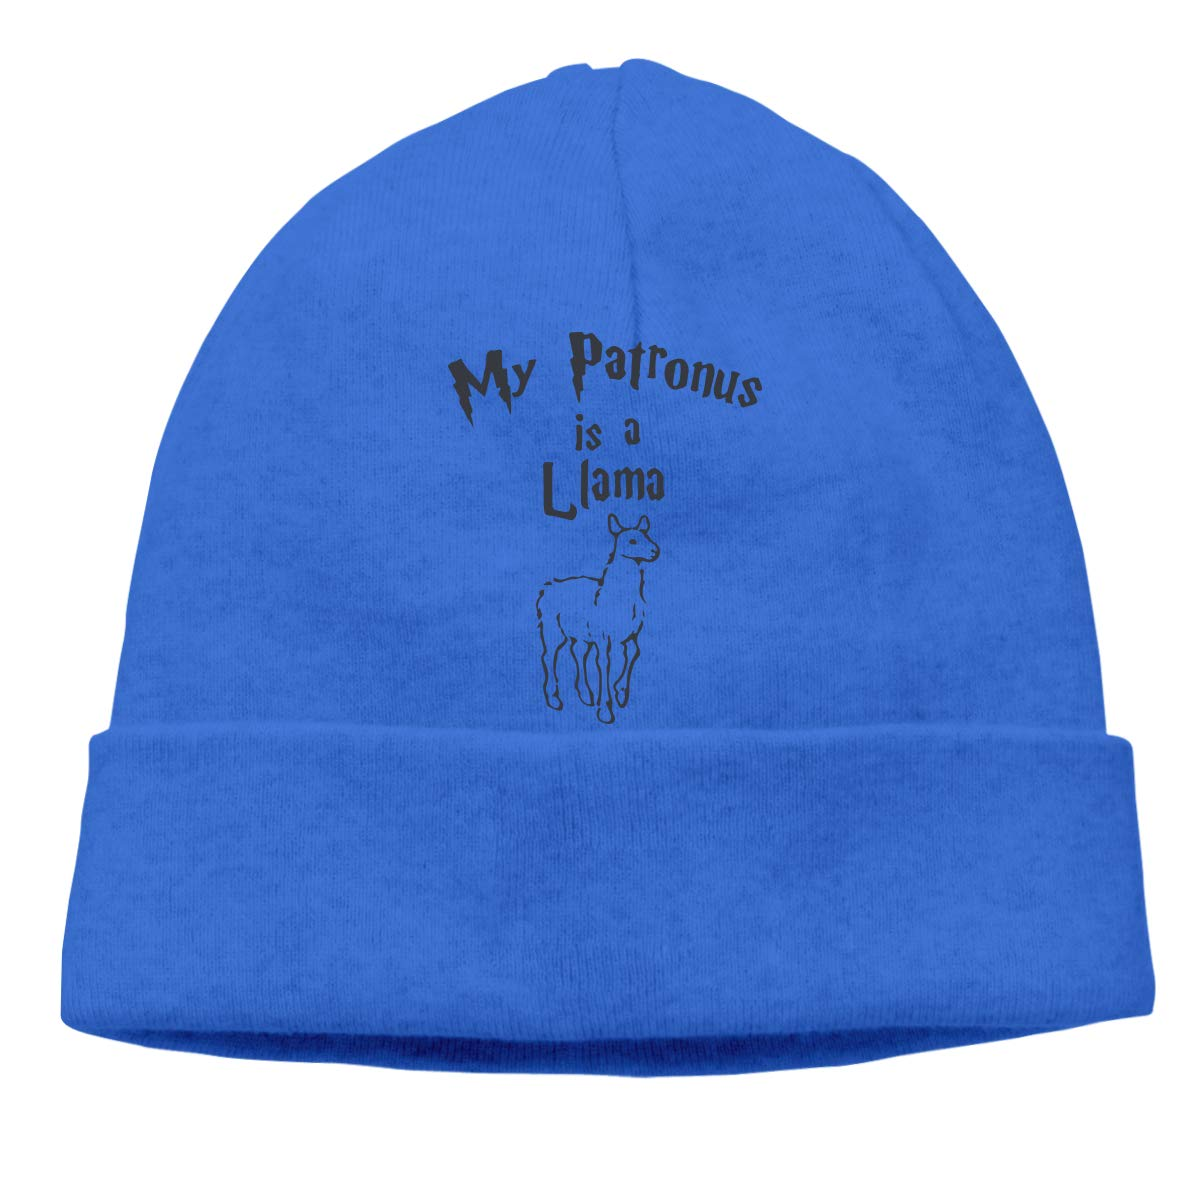 BF5Y3z/&MA Mens and Womens My Patronus is A Llama Knitting Hat Warm Beanies Cap